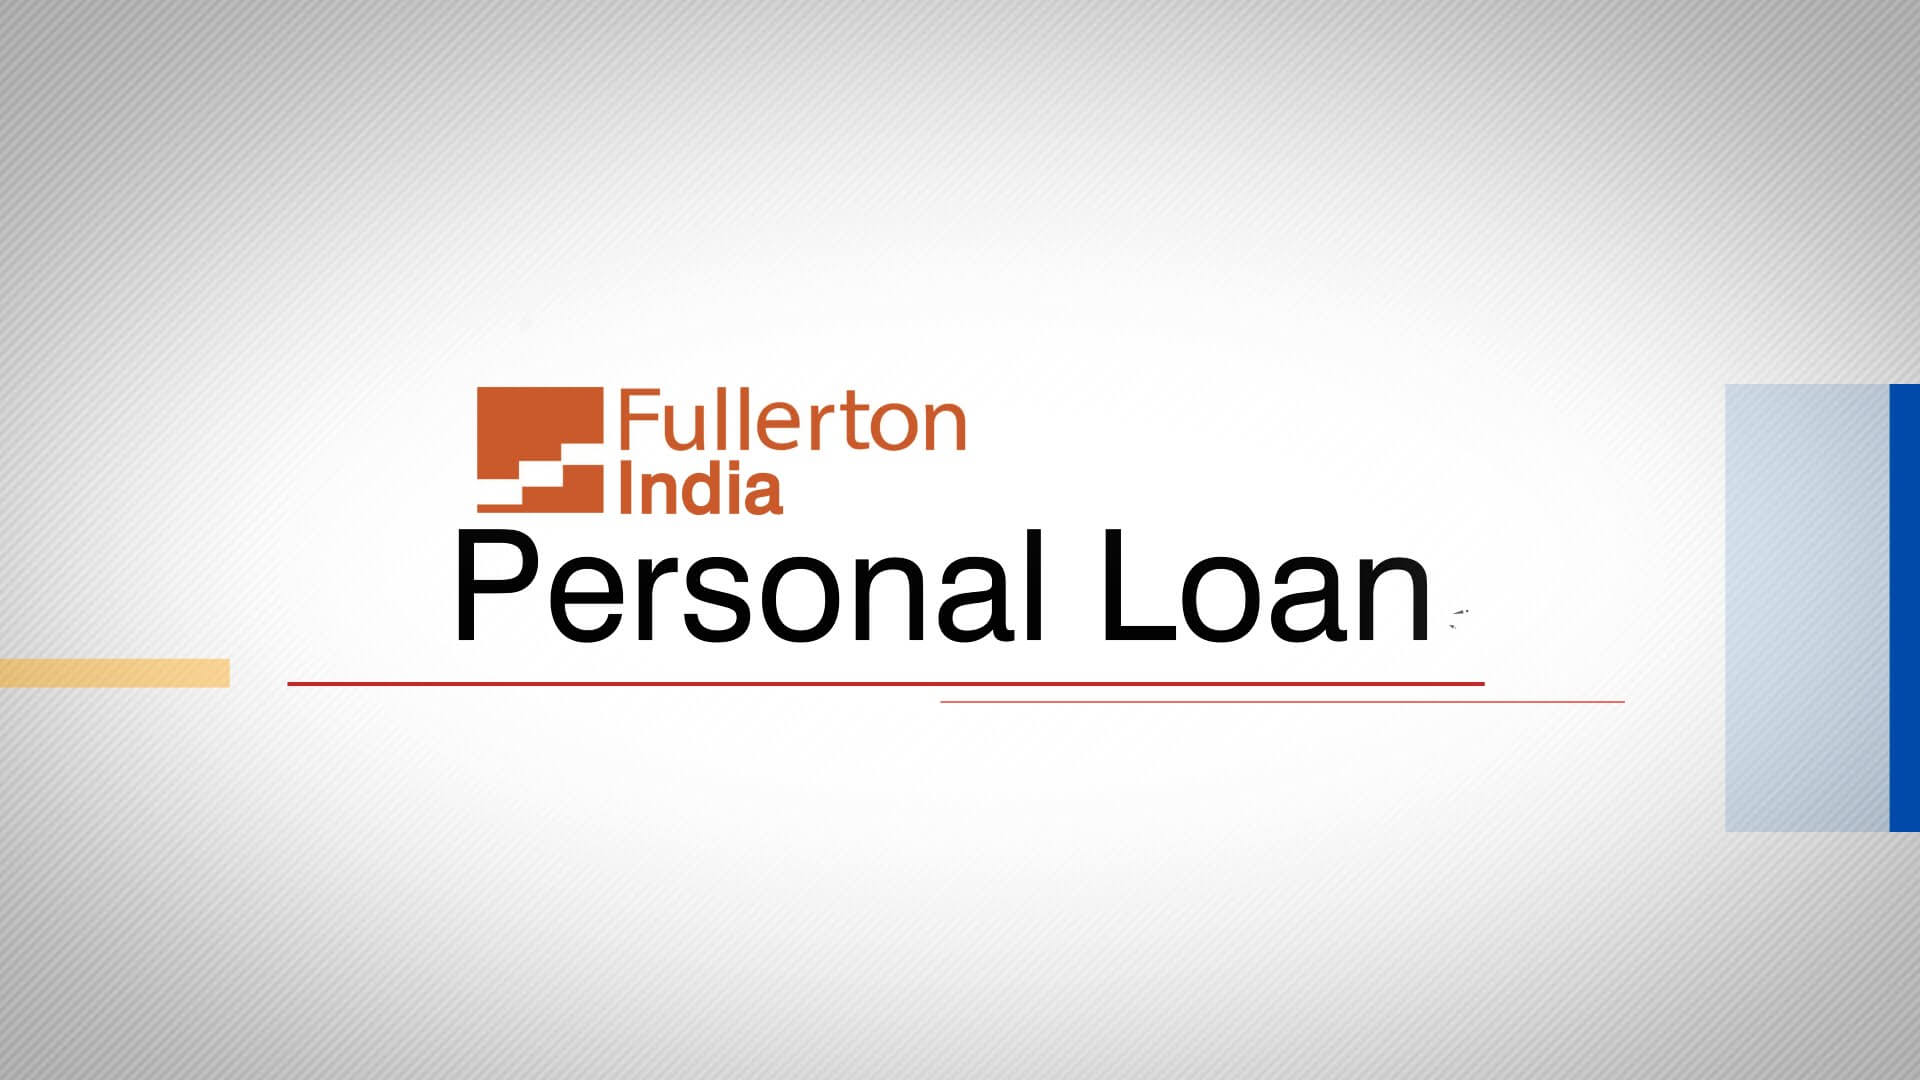 Best & Lowest Interest Rate Fullerton India Personal Loan India, Delhi/NCR, Noida 2018